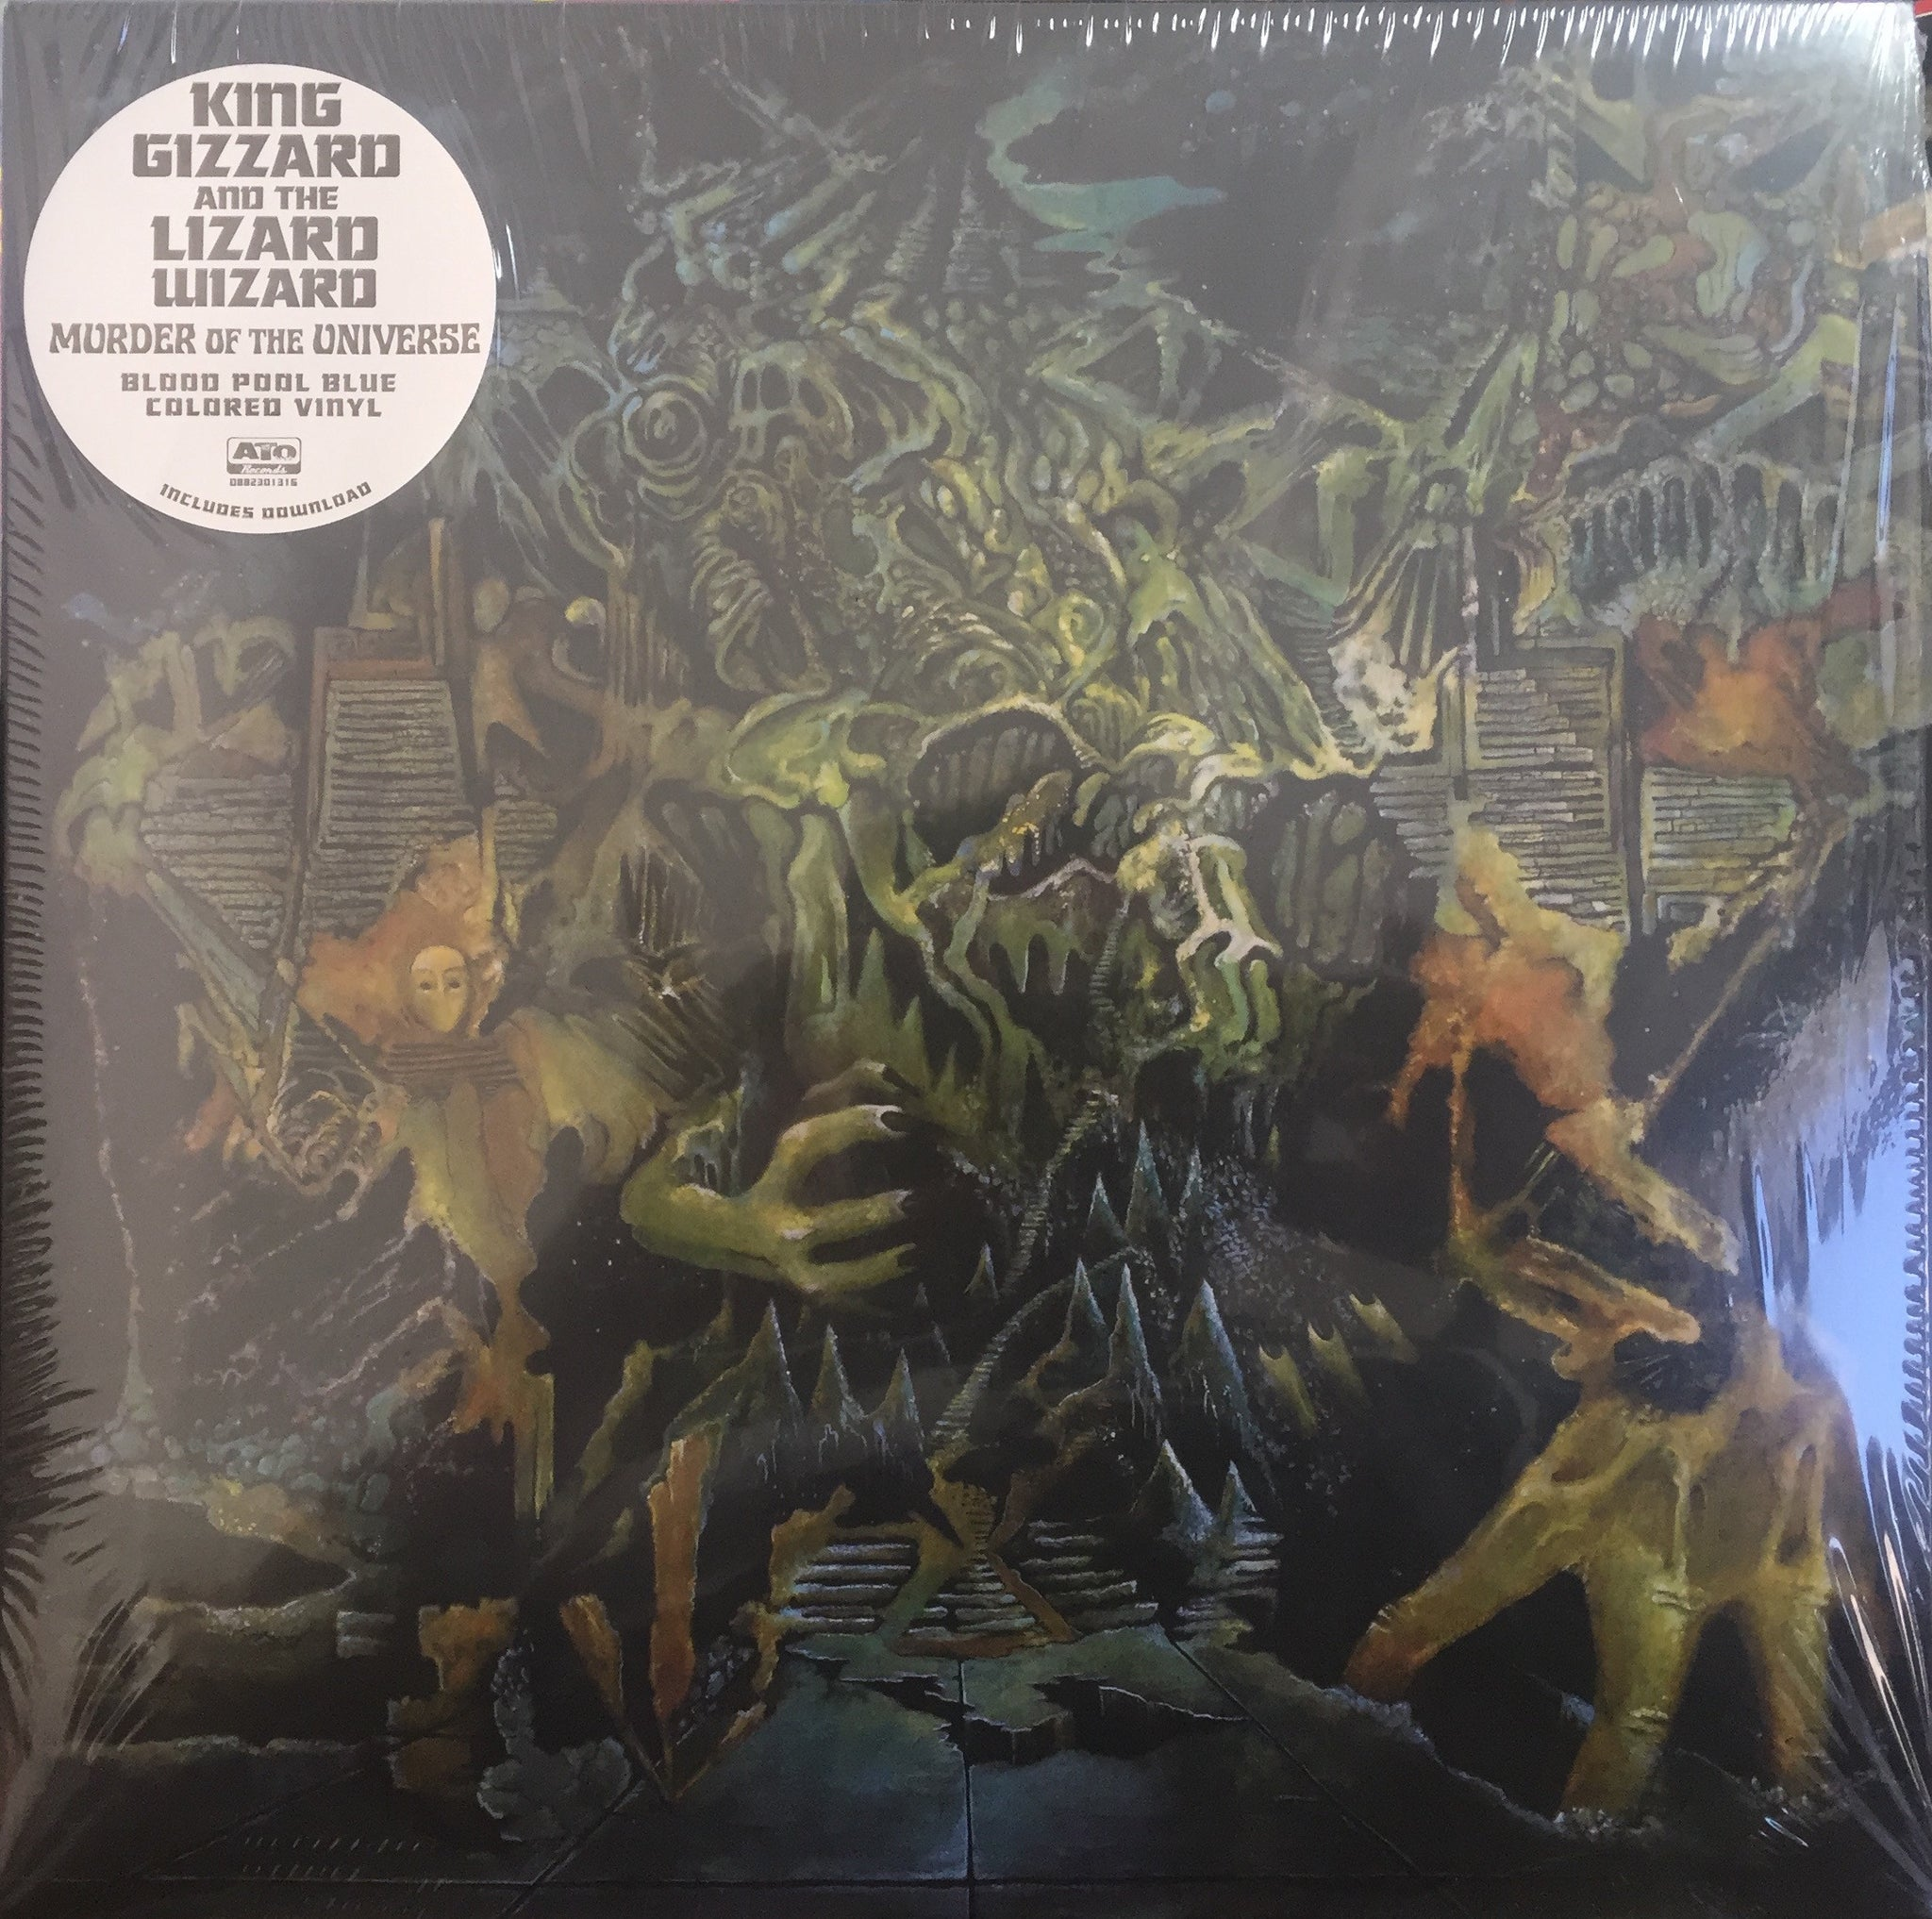 King Gizzard And The Lizard Wizard ‎– Murder Of The Universe - New Lp Record 2017 ATO USA Indie Exclusive Blood Pool Blue Vinyl, Book, Promo Poster, Sticker & Download - Psychedelic Rock